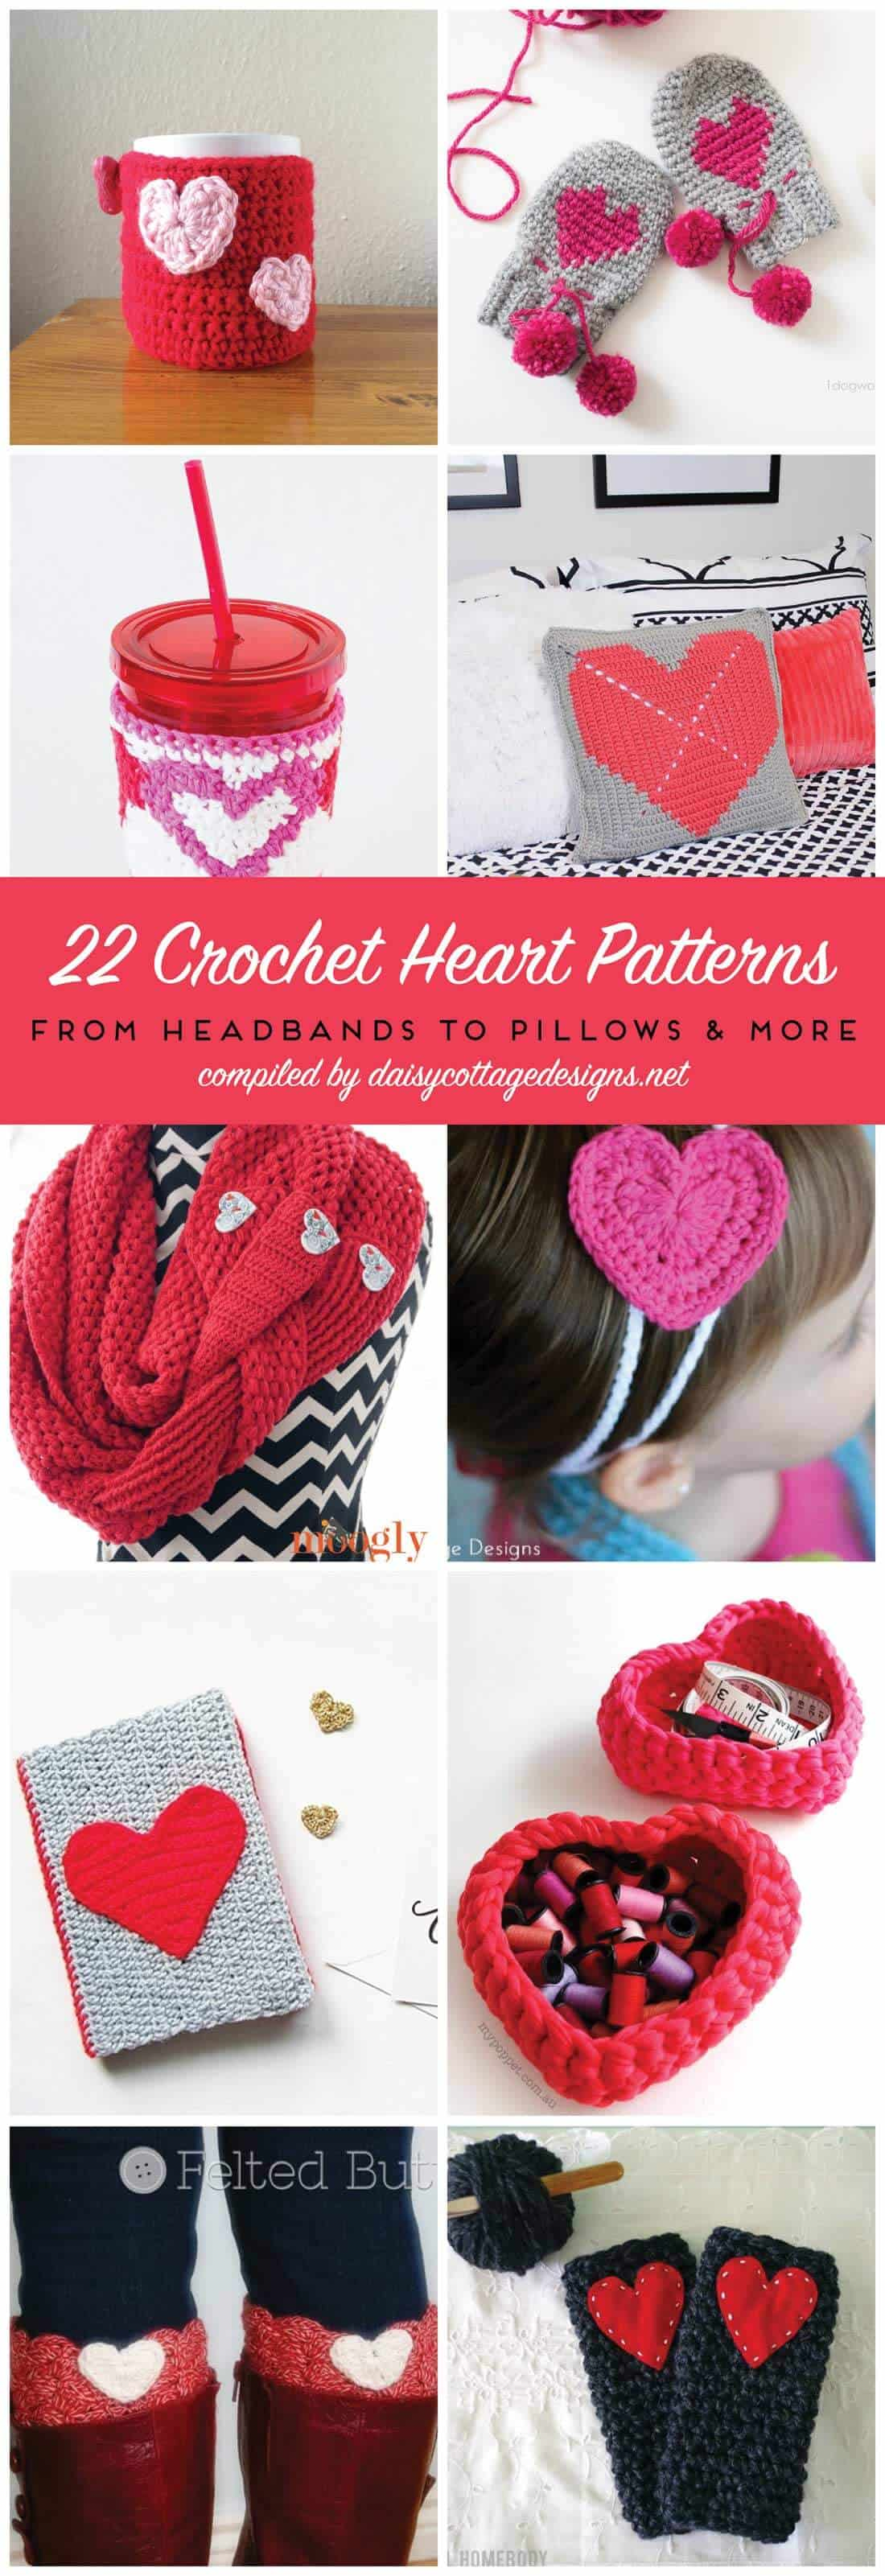 Crochet Heart Patterns For Valentines Day Daisy Cottage Designs